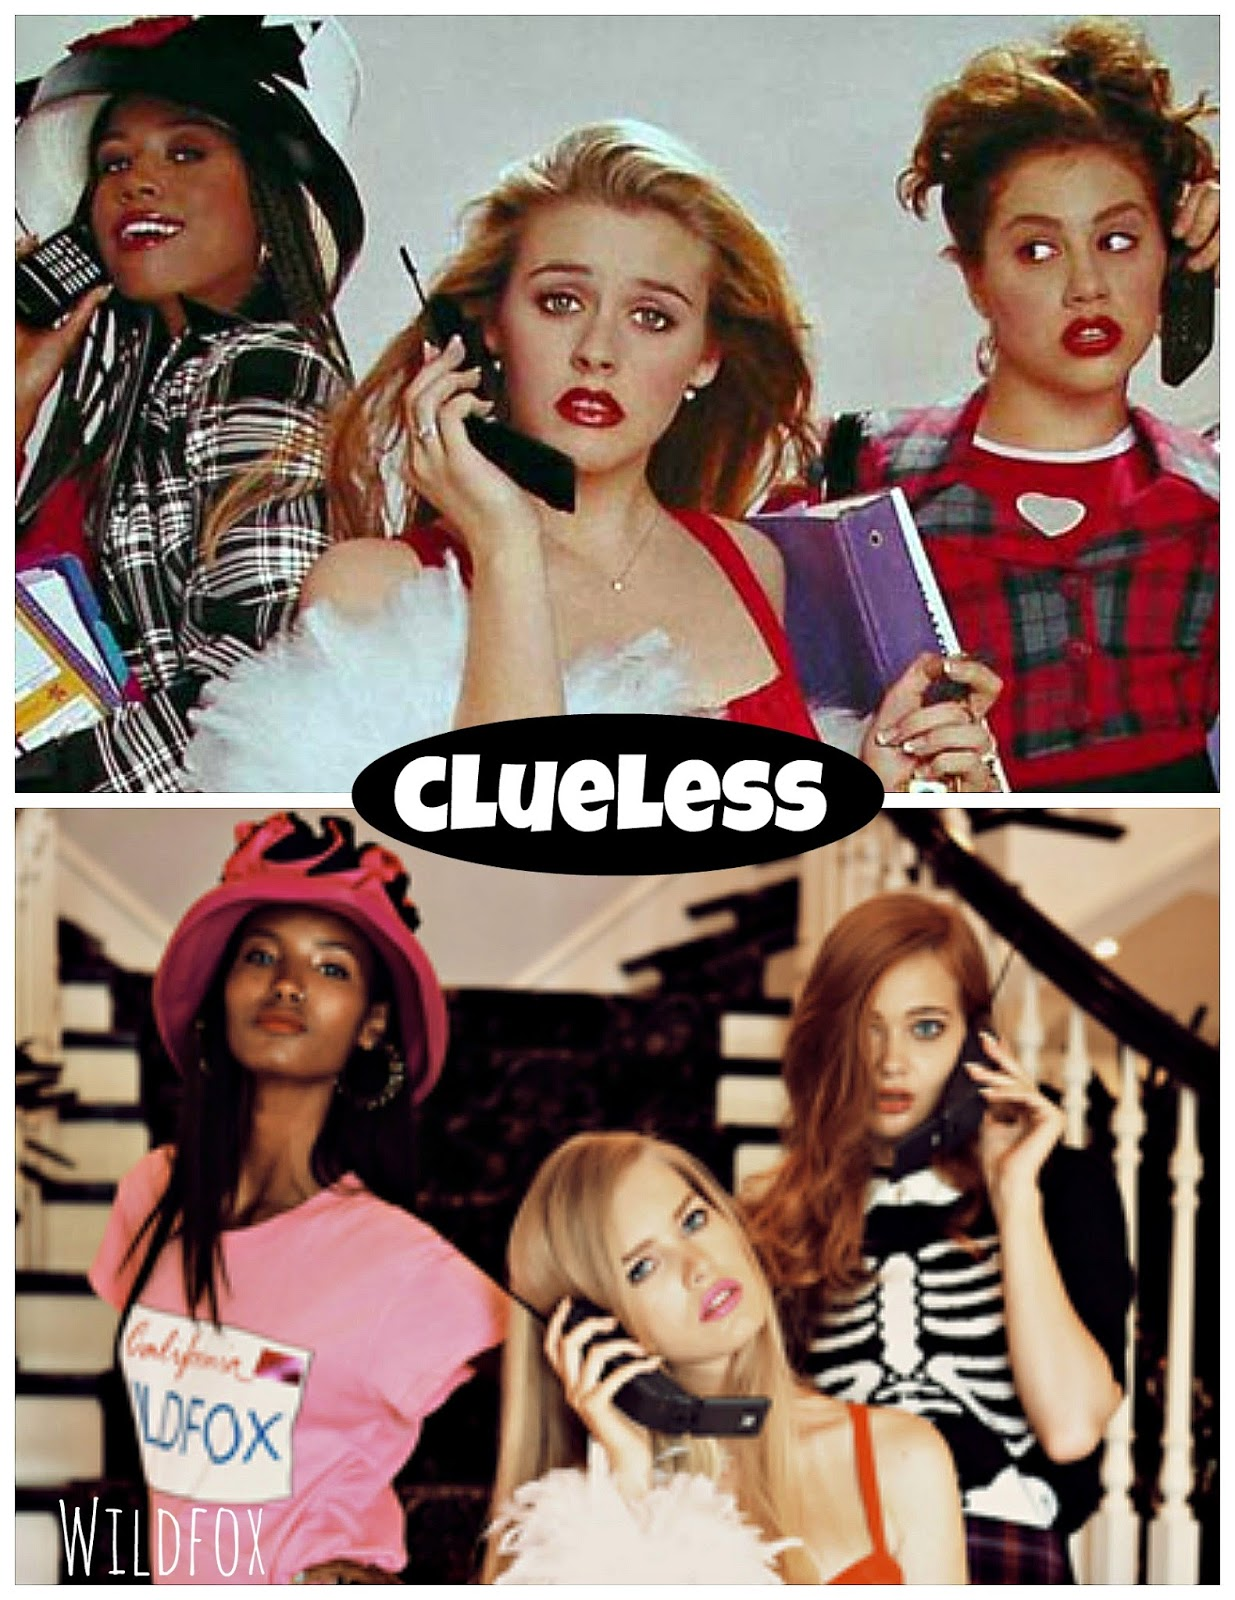 shirred clueless